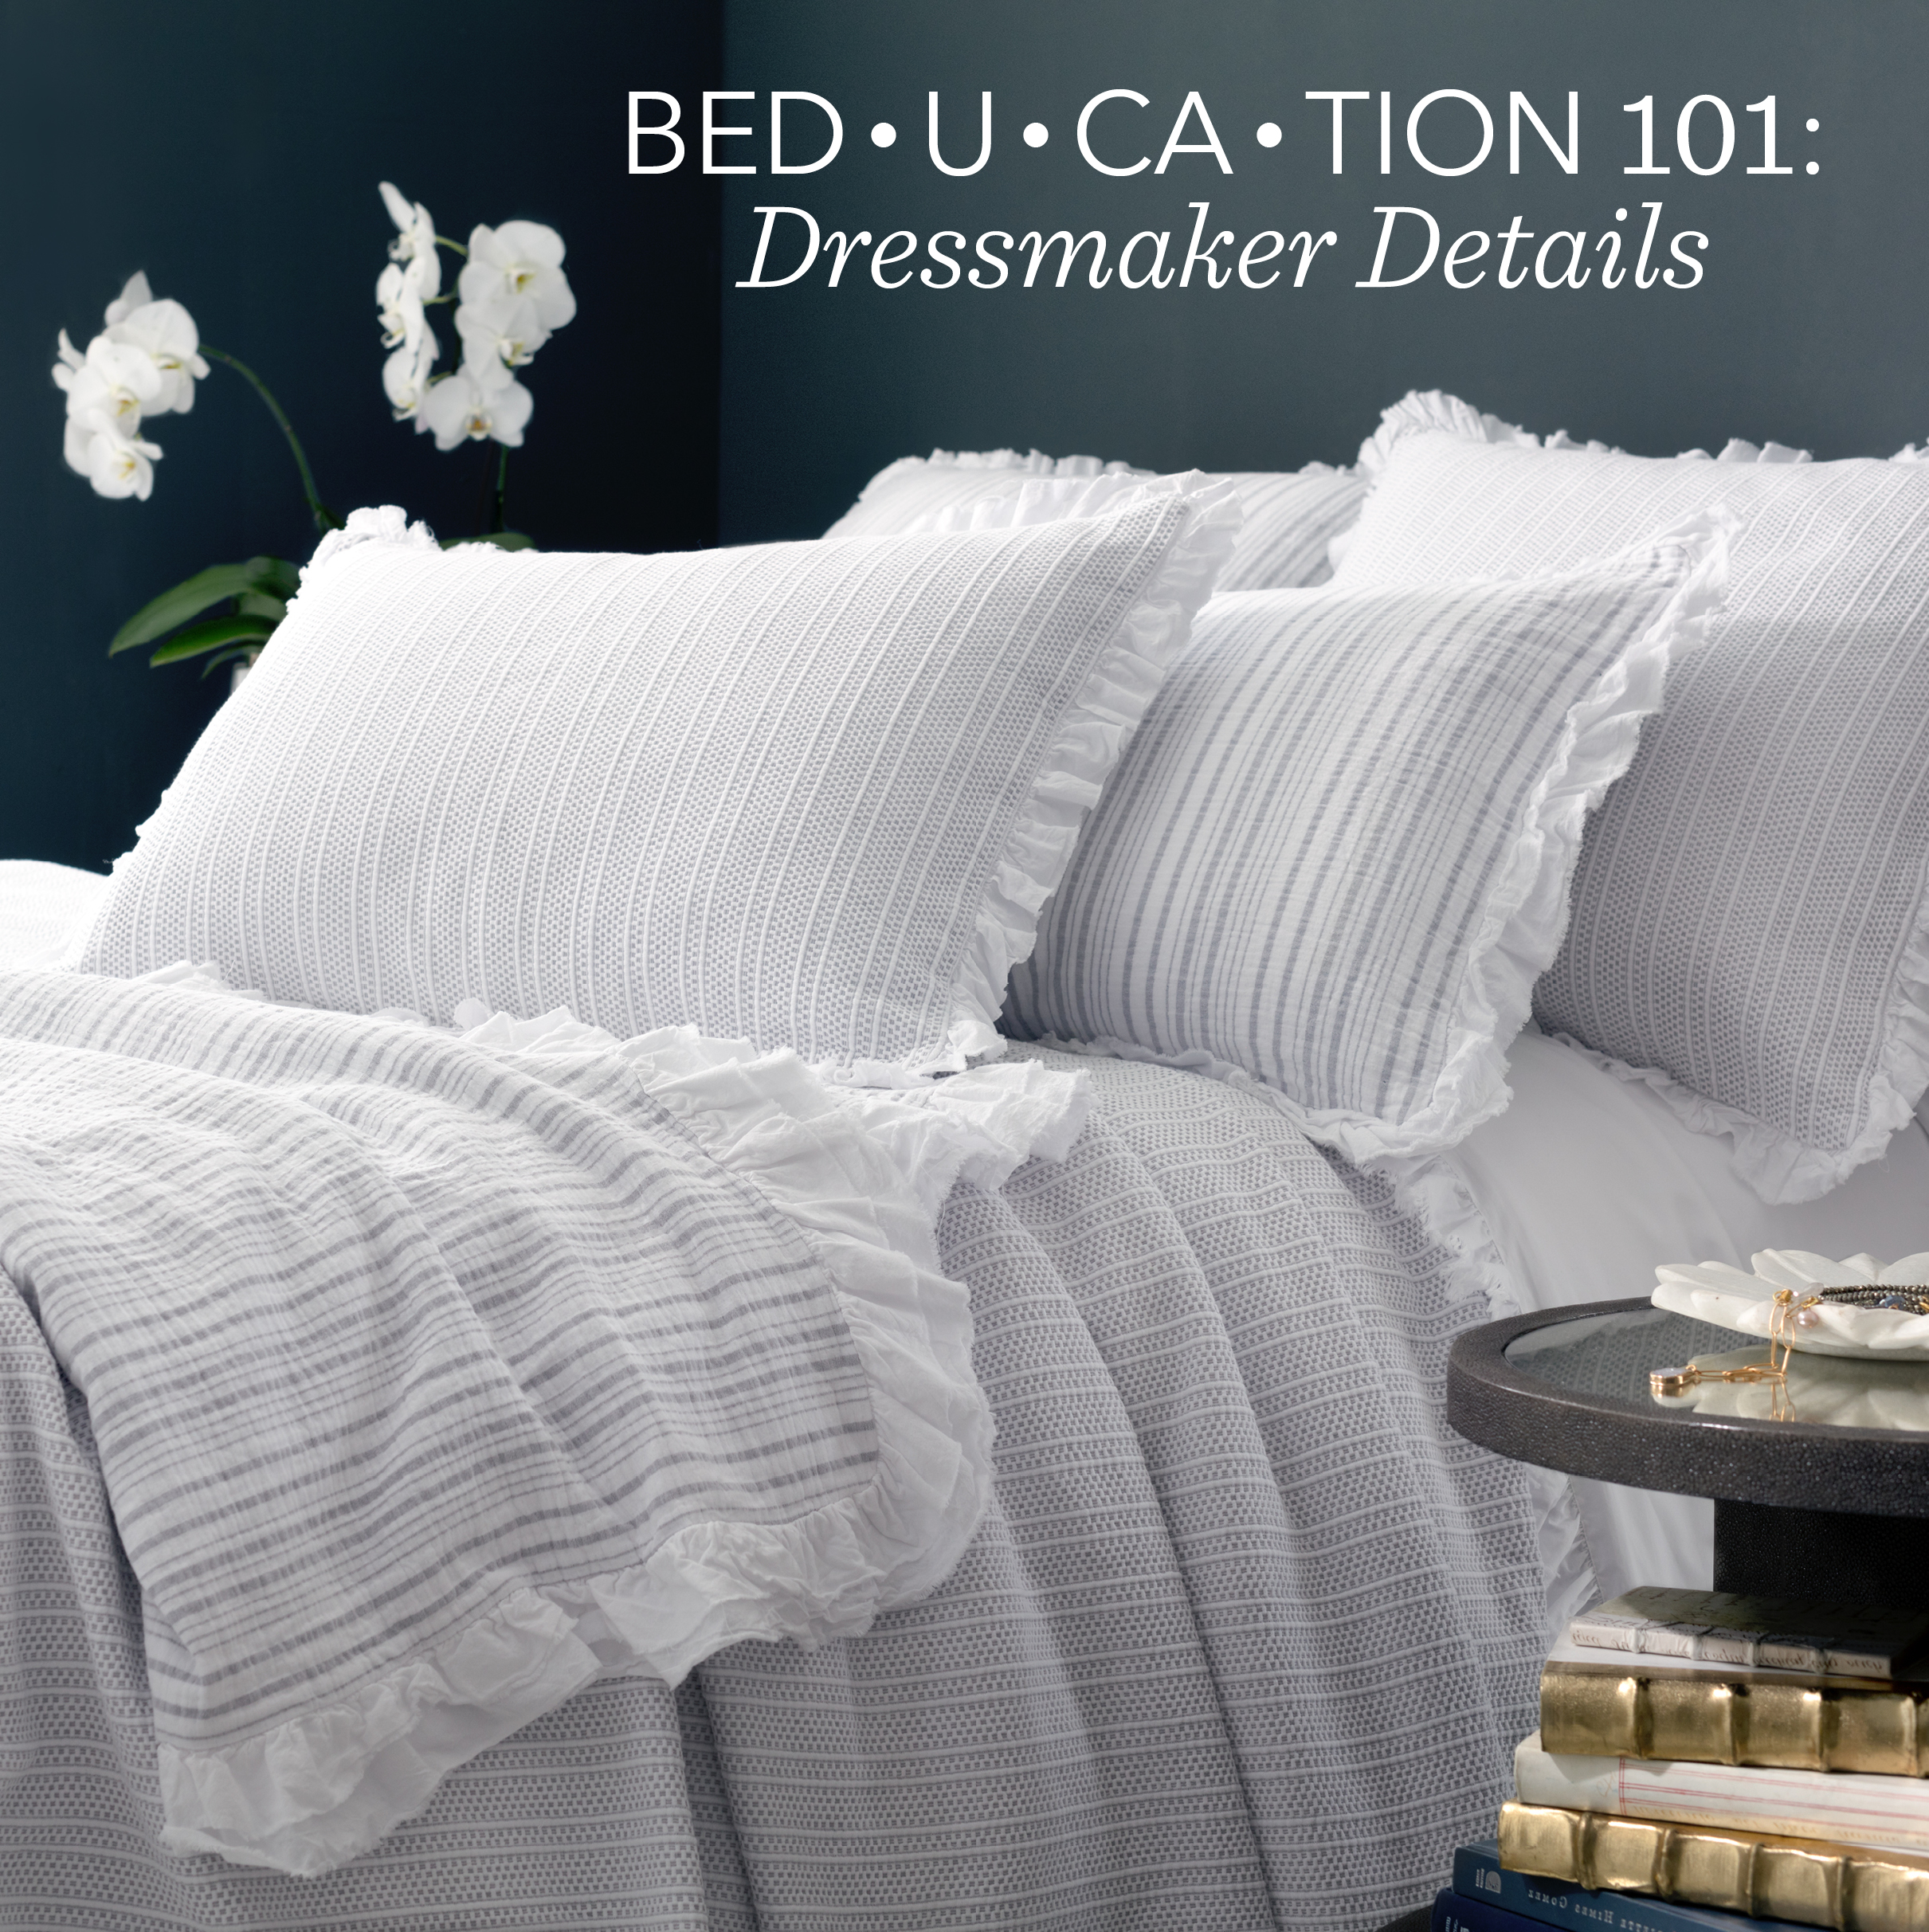 Bed U Cation 202: Dressmaker Details | Annie Selke's Fresh American Style